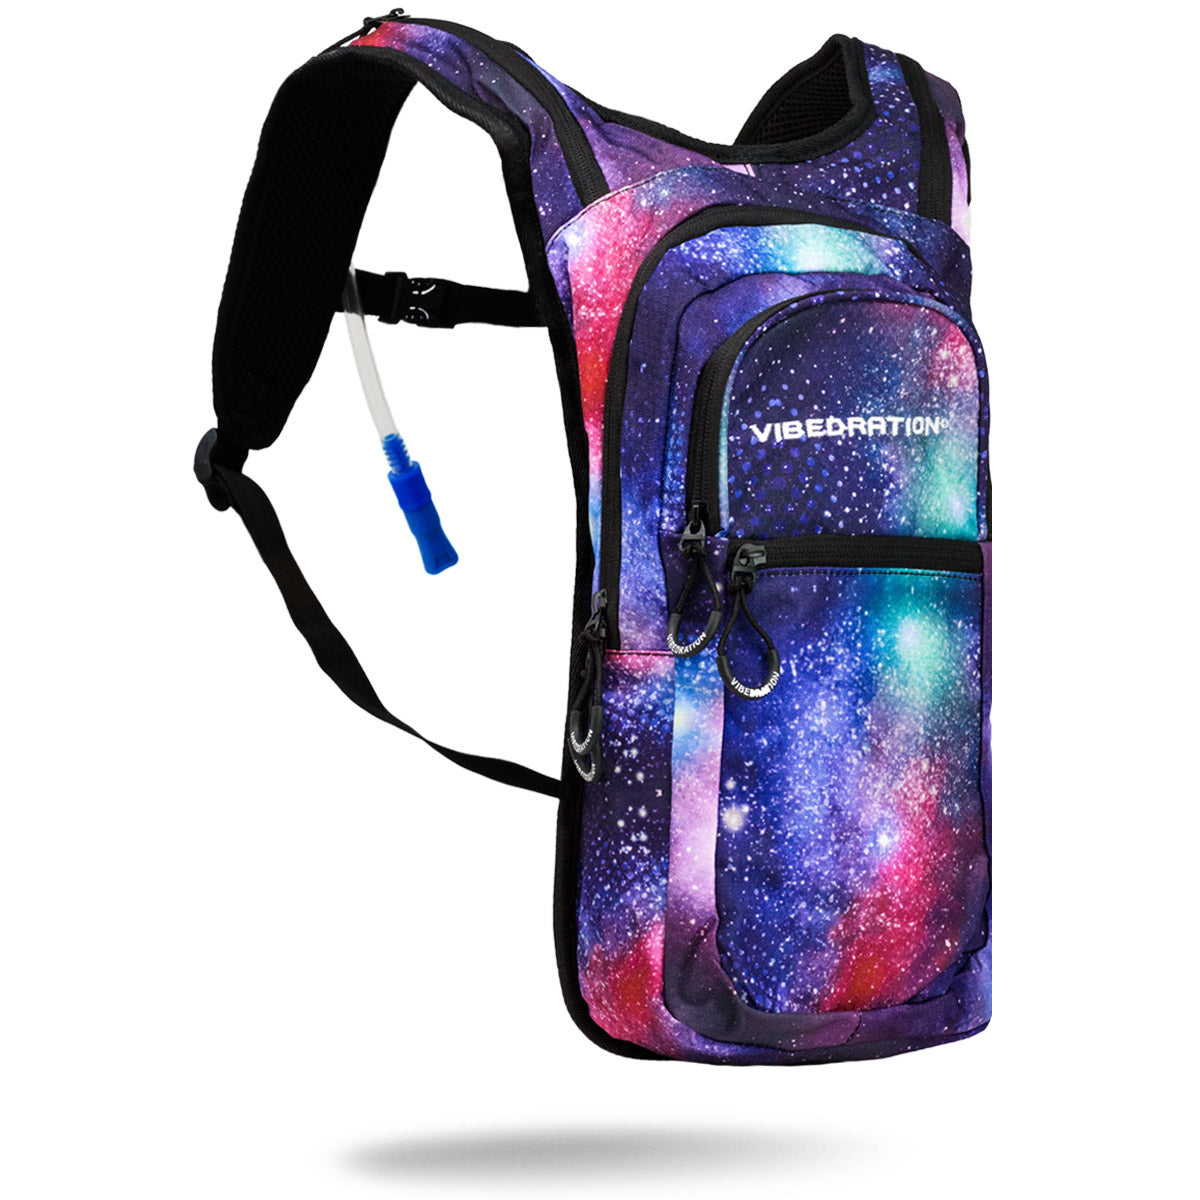 Galaxy Water Backpack with two liter water bladder